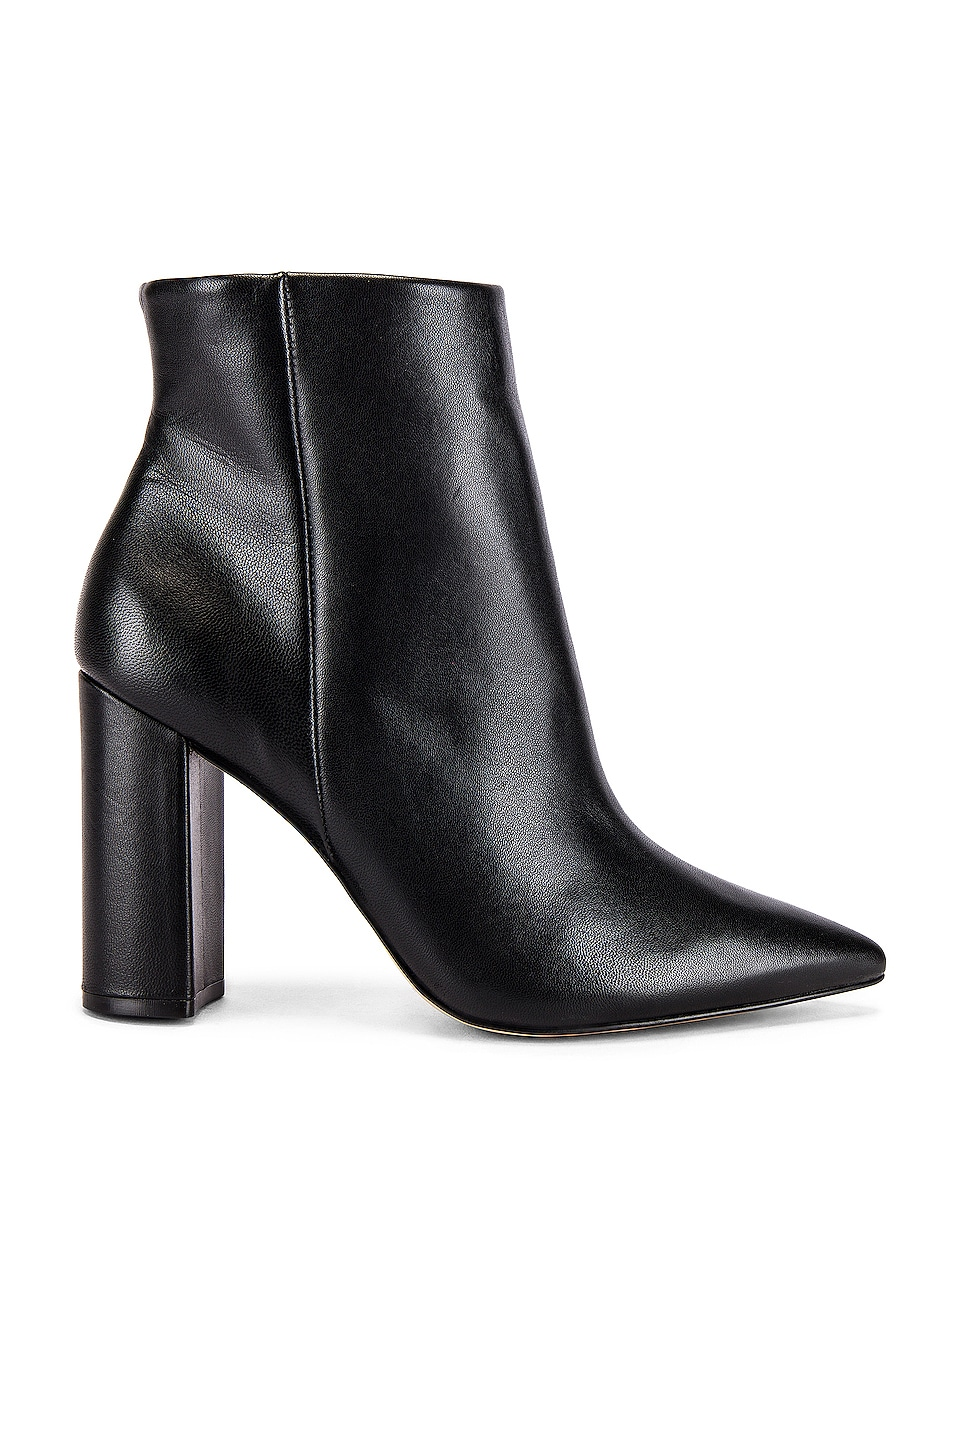 RAYE Cruz Bootie in Black